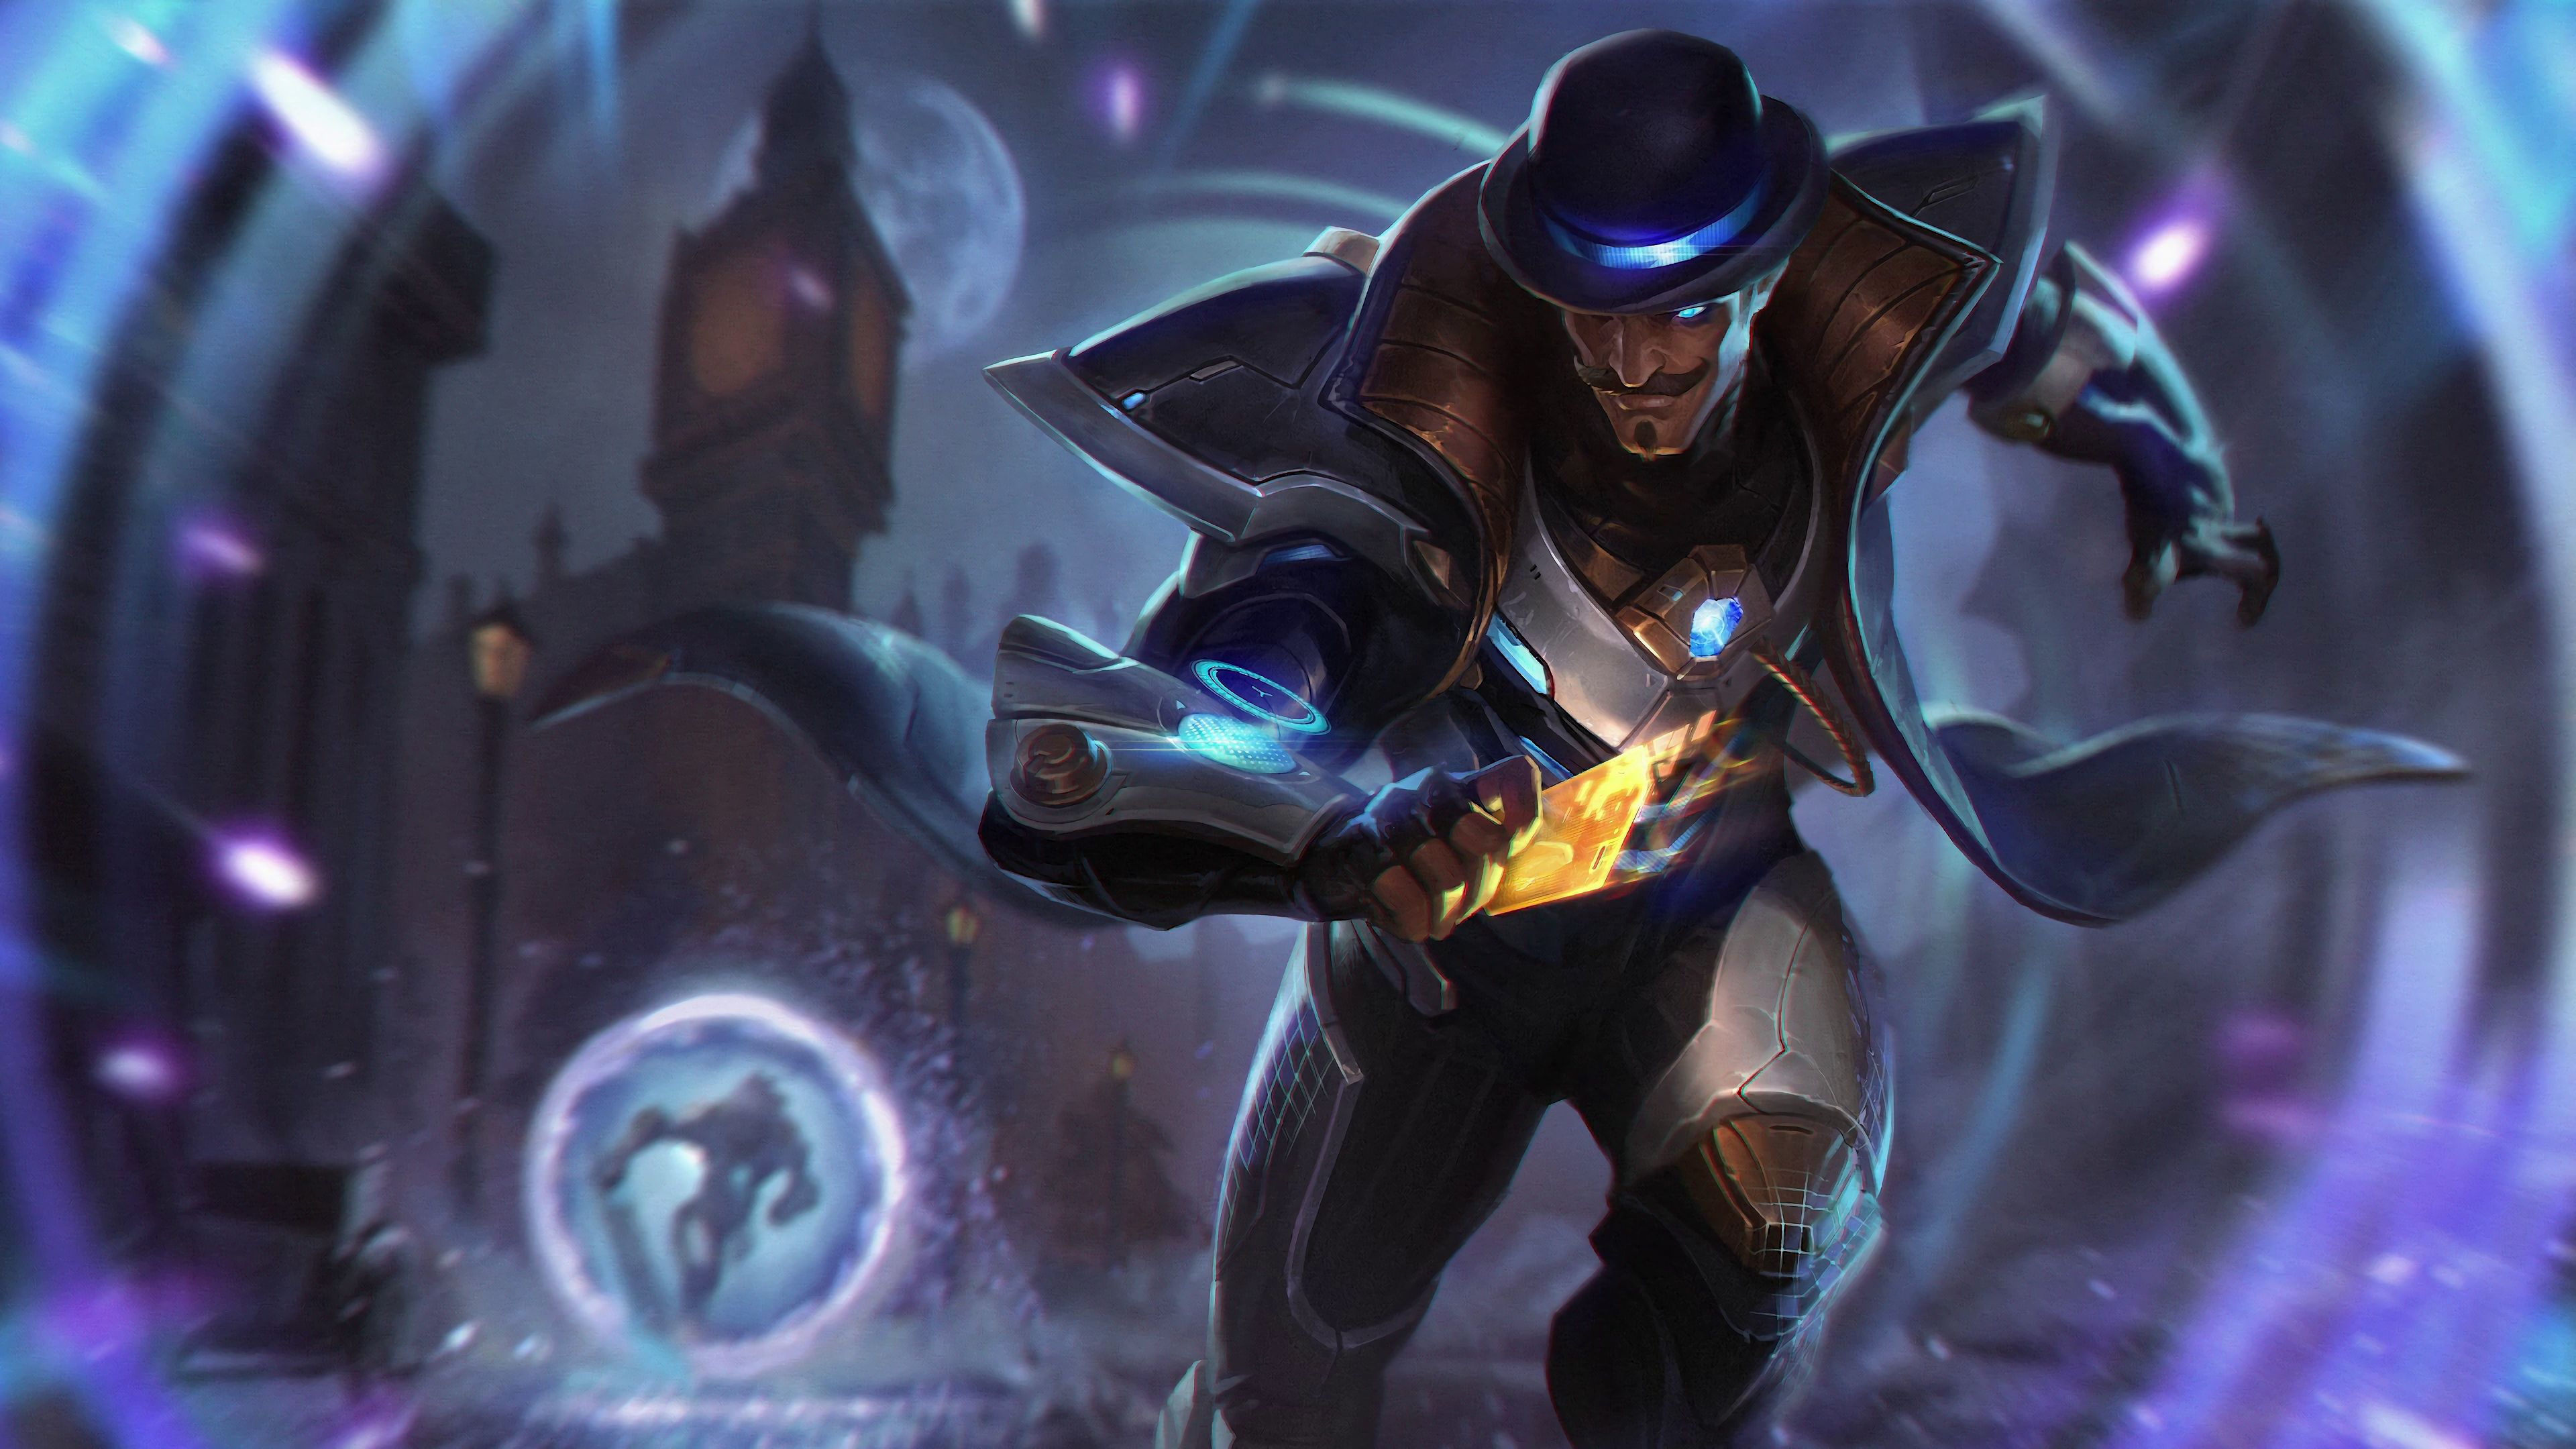 twisted fate skins league of legends game 4k 1553074654 - Twisted Fate Skins League Of Legends Game 4k - league of legends wallpapers, hd-wallpapers, games wallpapers, digital art wallpapers, artwork wallpapers, 8k wallpapers, 5k wallpapers, 4k-wallpapers